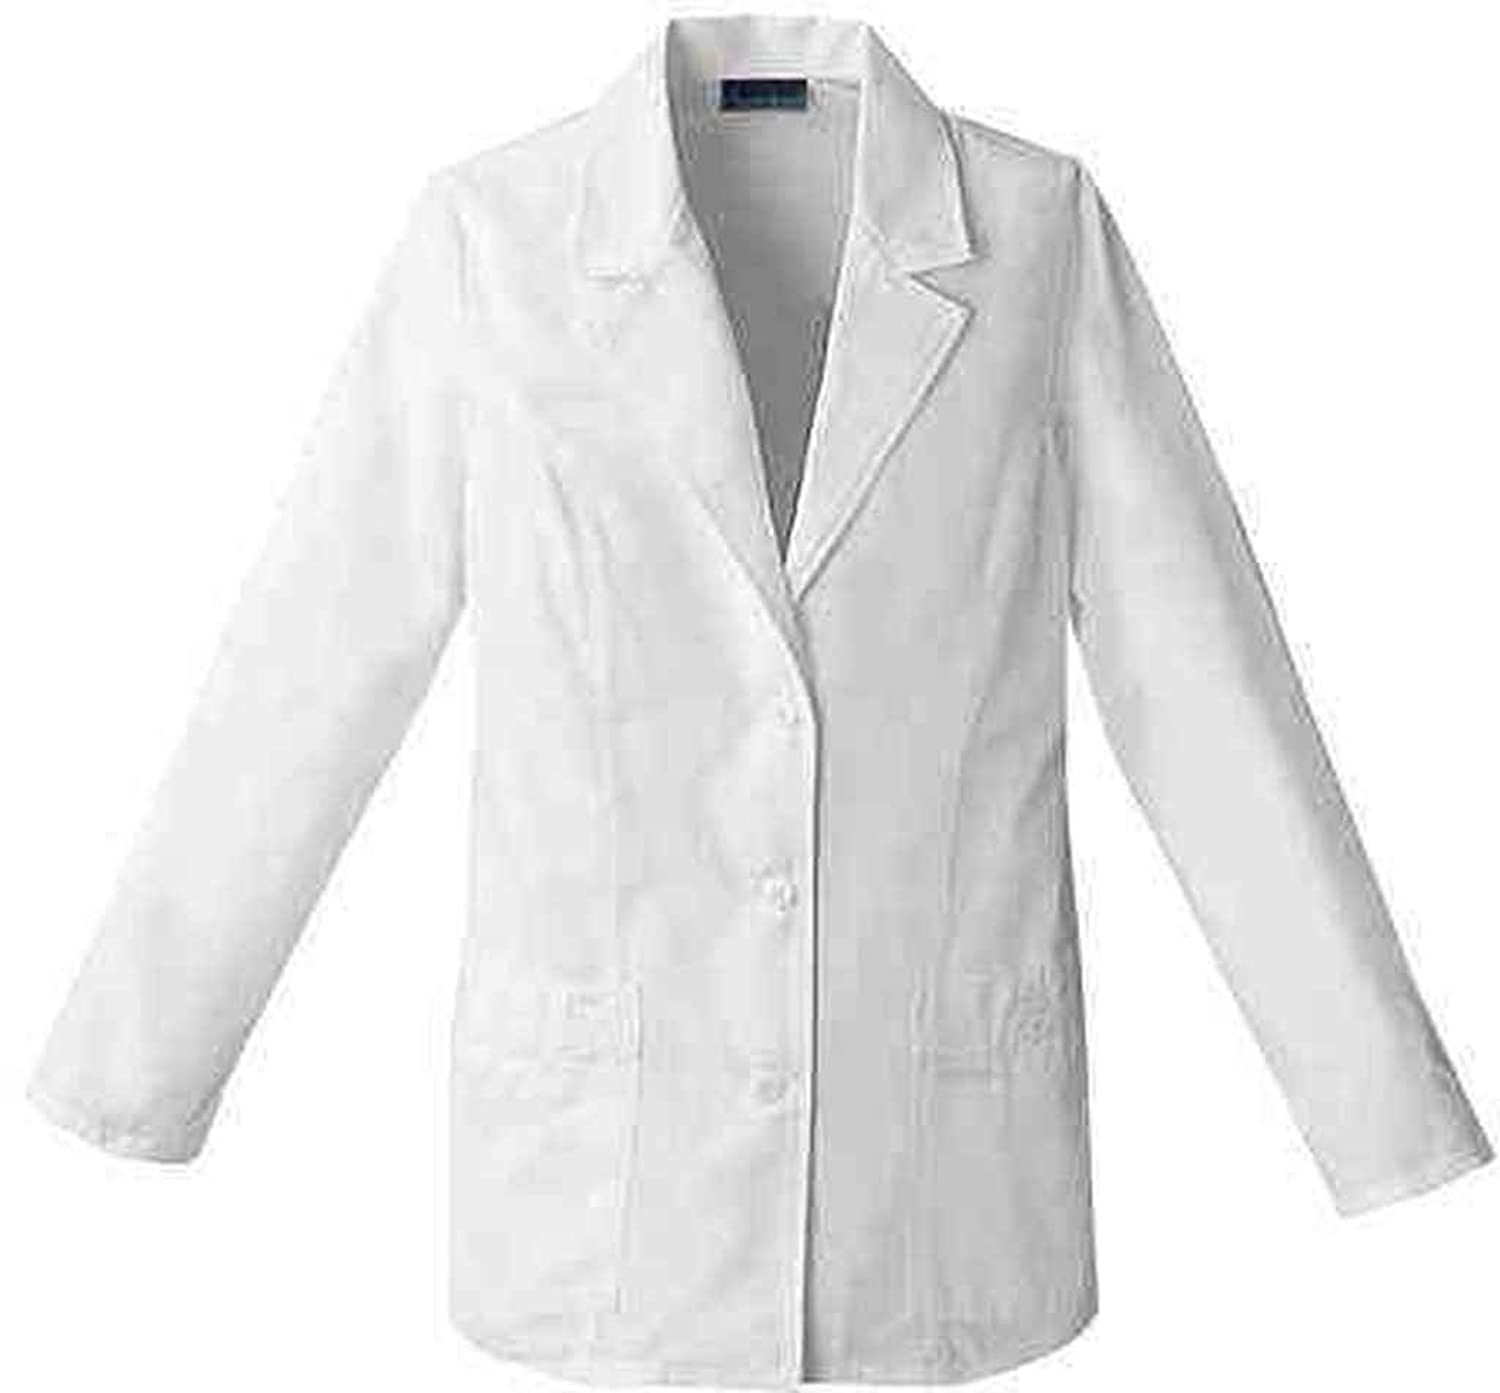 Amazon.com: Cherokee Professional Whites by Women's Daisy Embroidered  29&Frac12; Lab Coat: Science Lab Coats And Jackets: Clothing